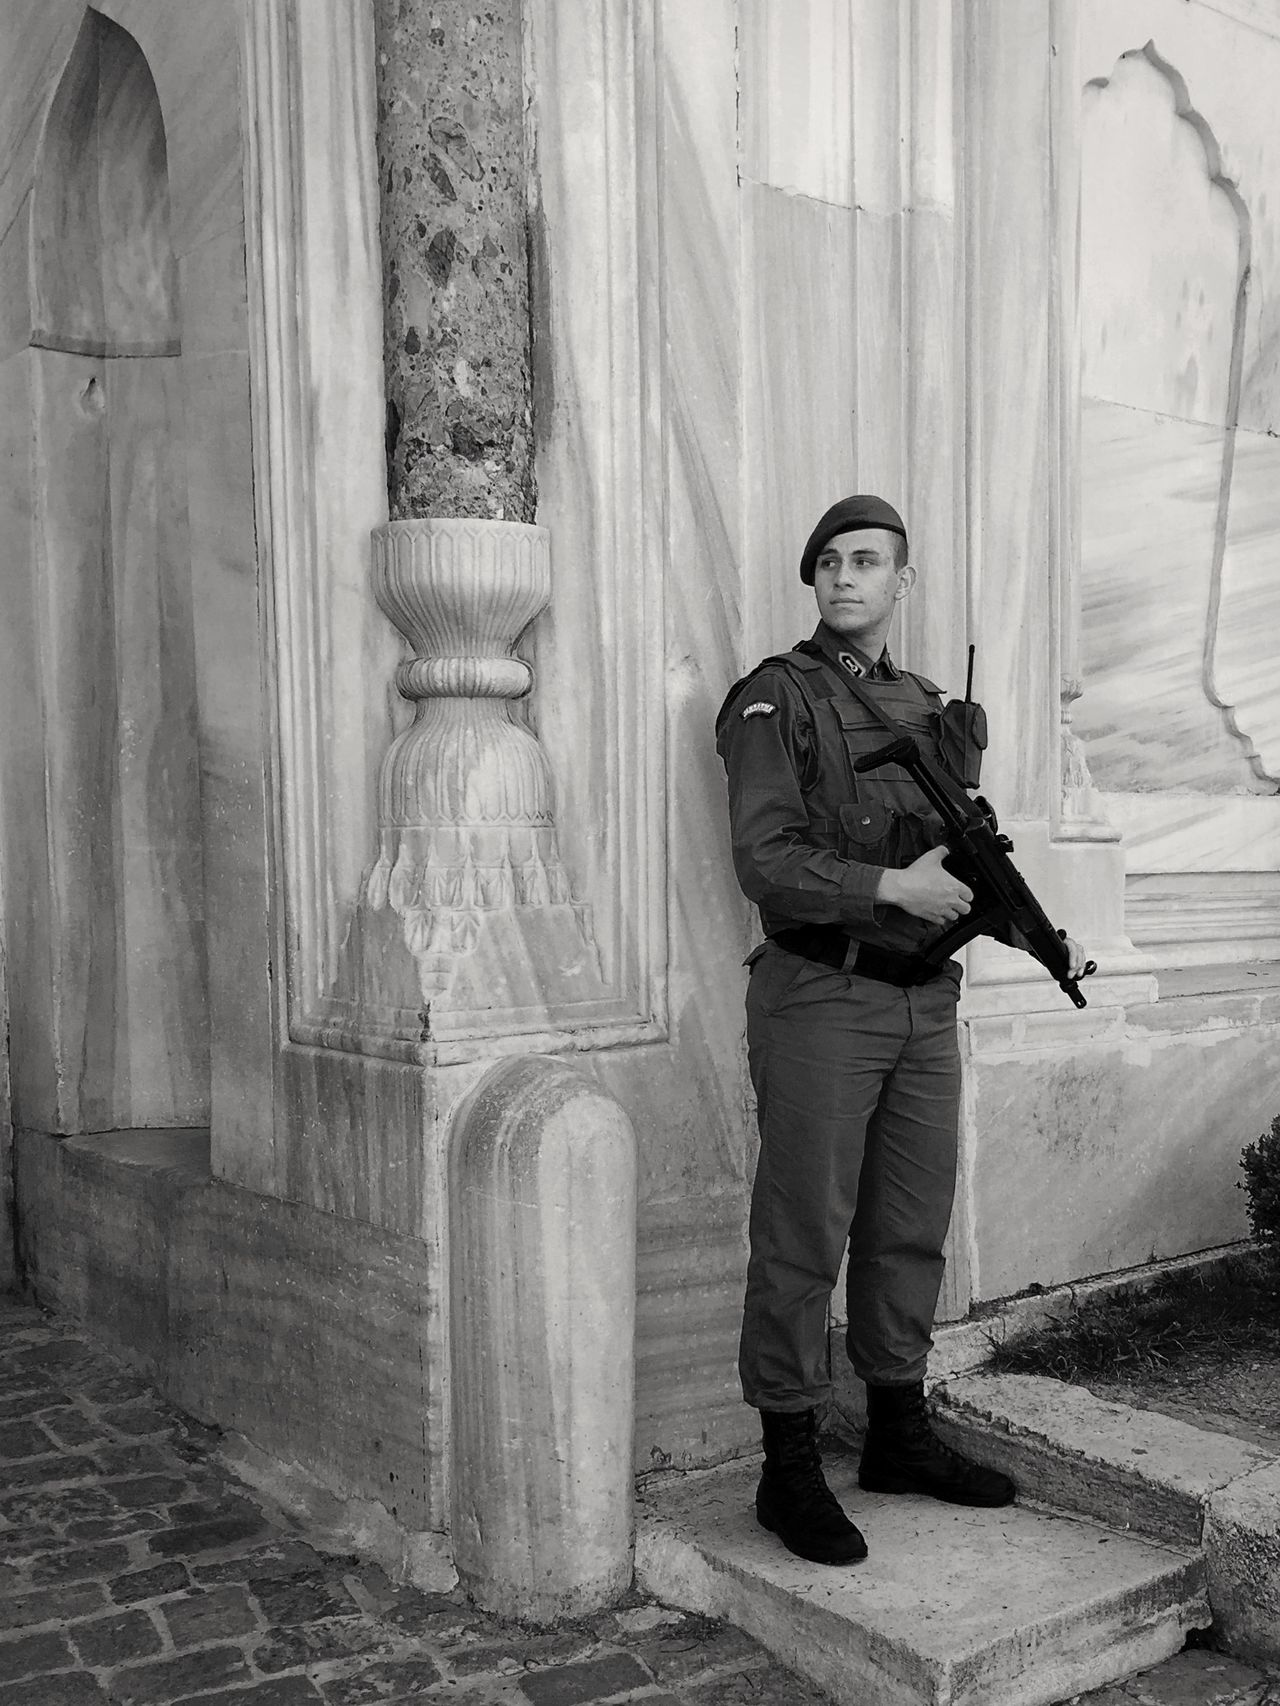 299 / 366 Architecture Guardian Jacket Military Topkapi Topkapi Palace Tourism Uniform Blackandwhite Black & White